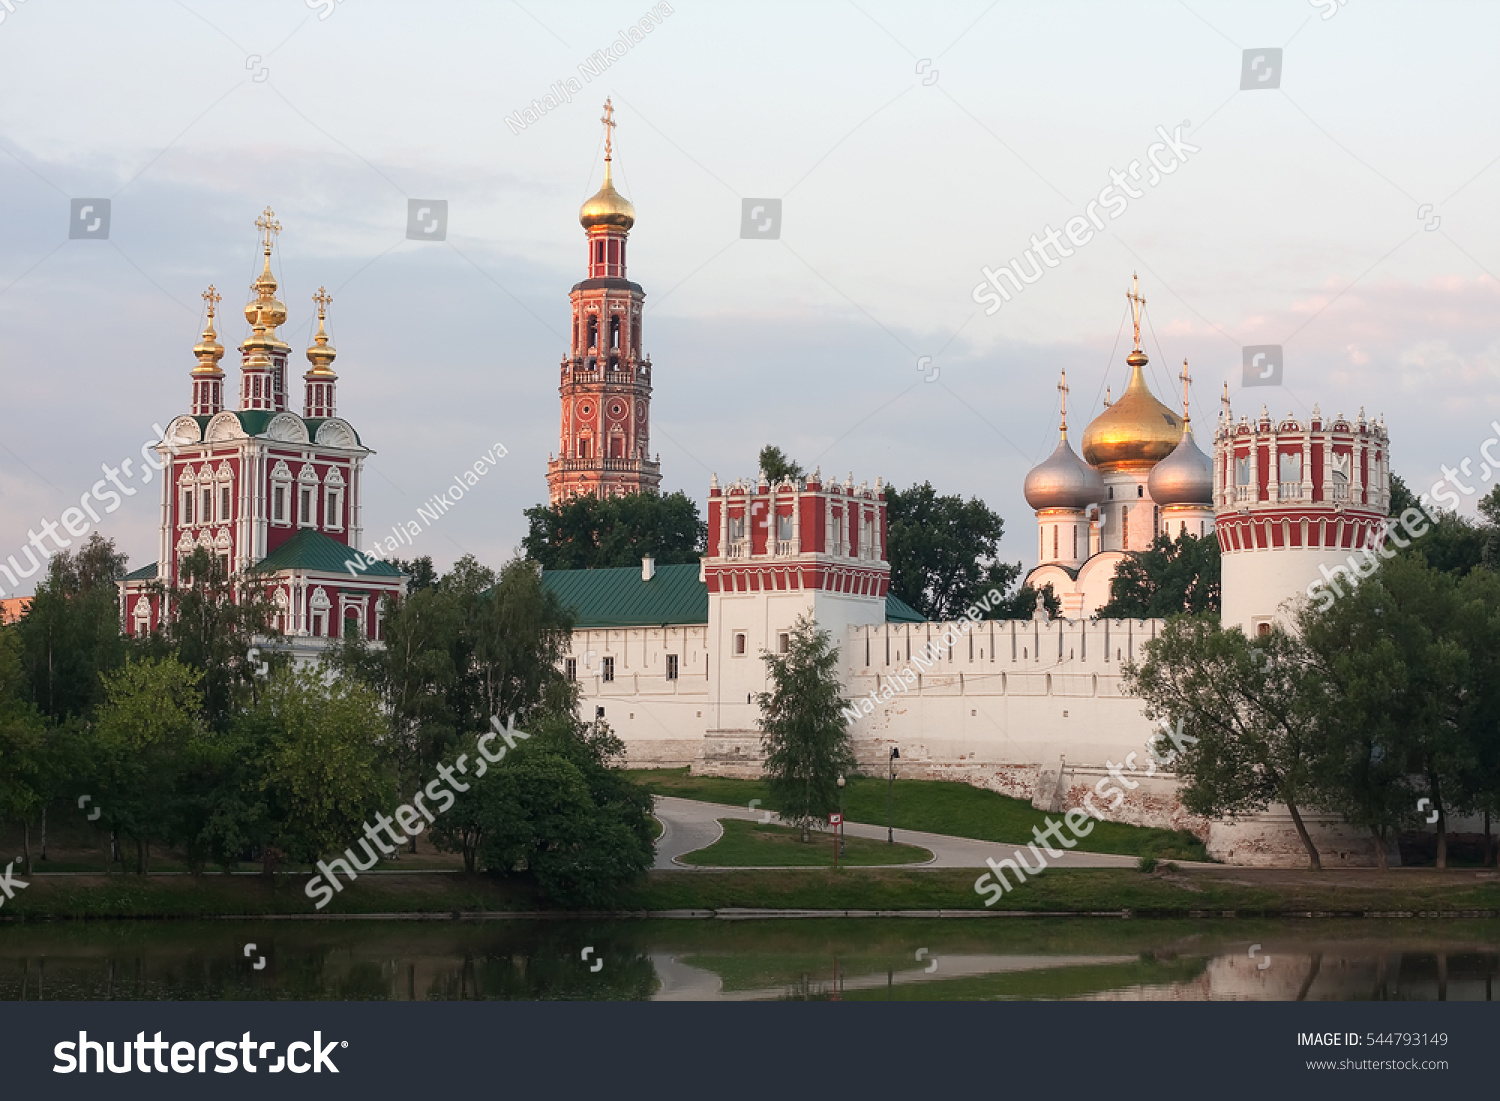 The most ancient Orthodox shrines. Novodevichy Convent